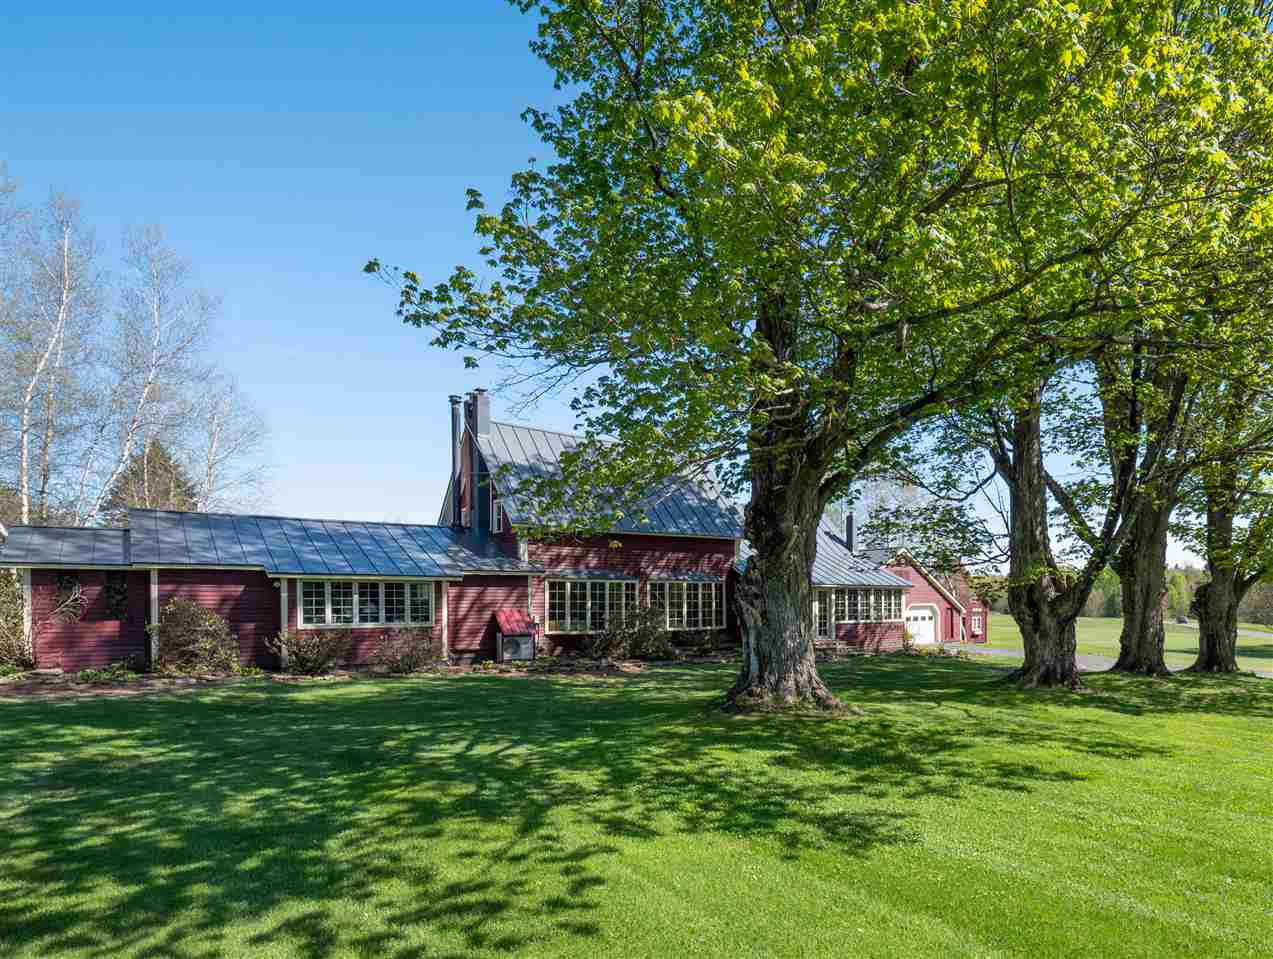 MLS 4785156: 815 Whitcomb Island Road, Johnson VT